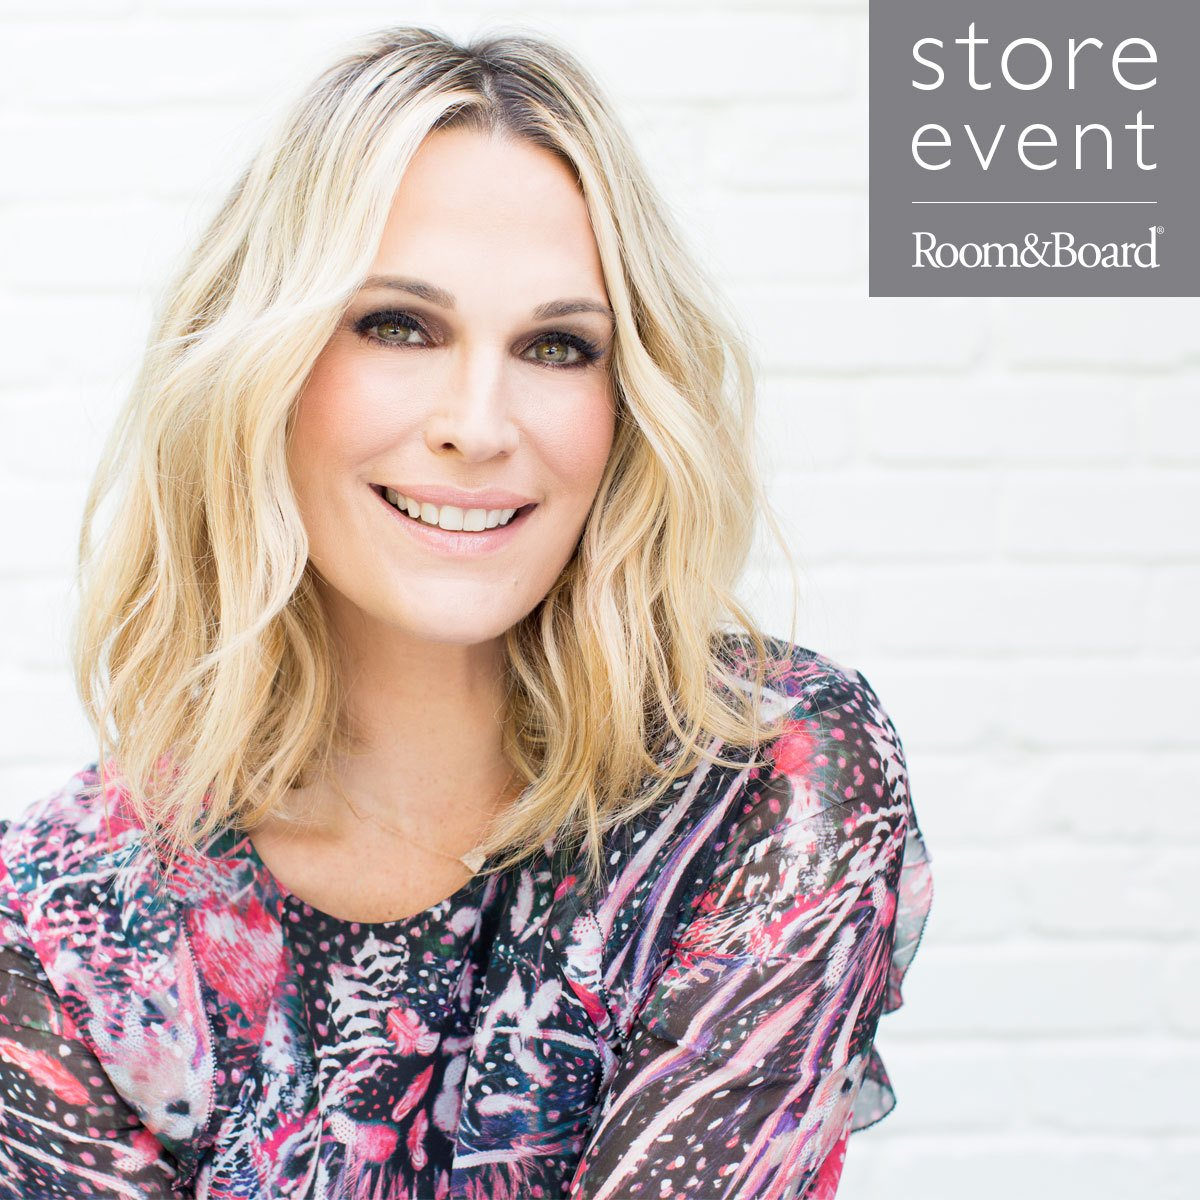 RT @roomandboard: Join us tomorrow @ #roomandboardDC for a book signing with @MollyBSims! https://t.co/jWEs8bSHyy https://t.co/xZmoZKHHbz